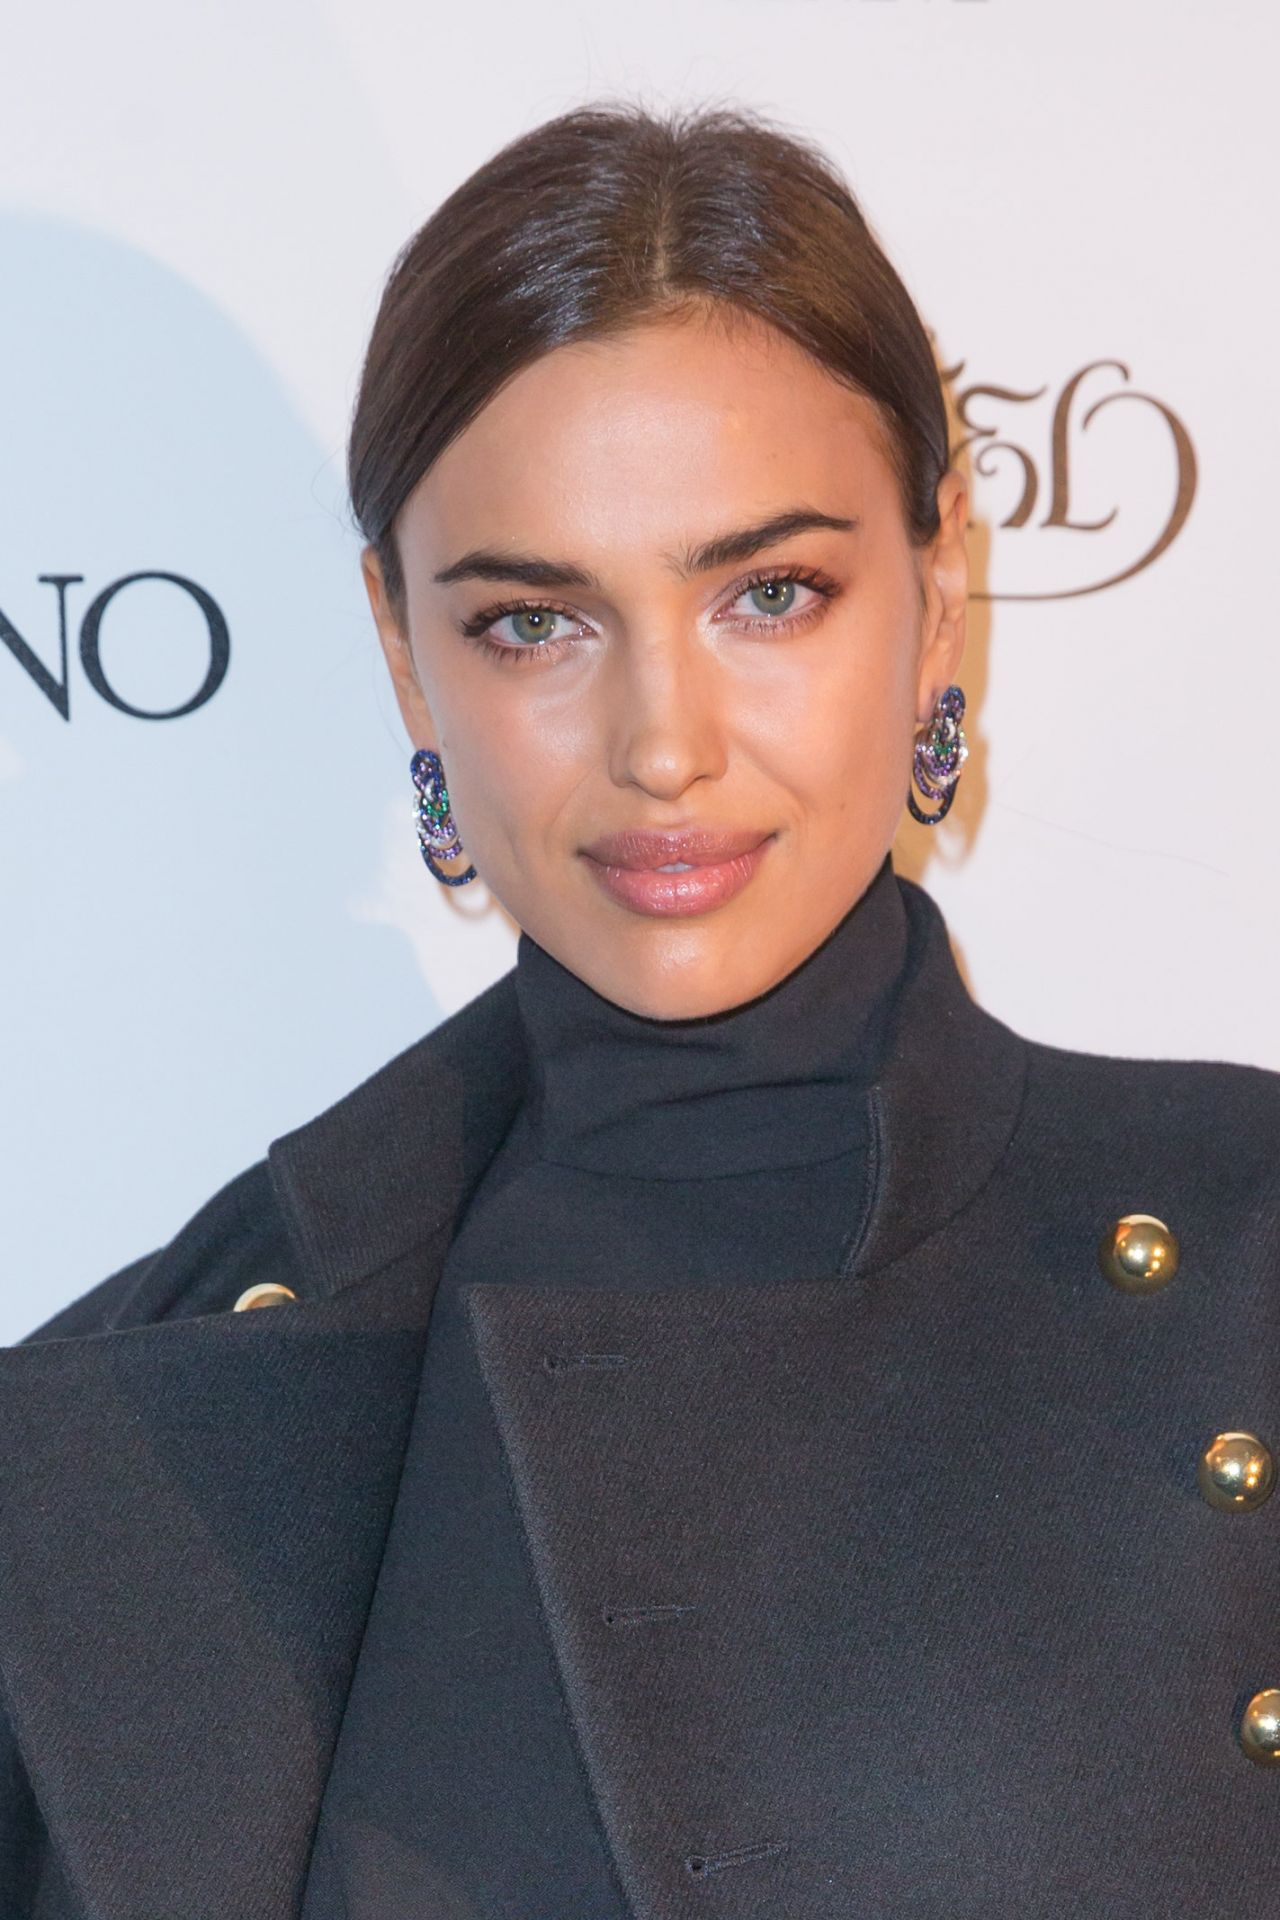 Irina Shayk De Grisogono Photocall In Paris January 2016